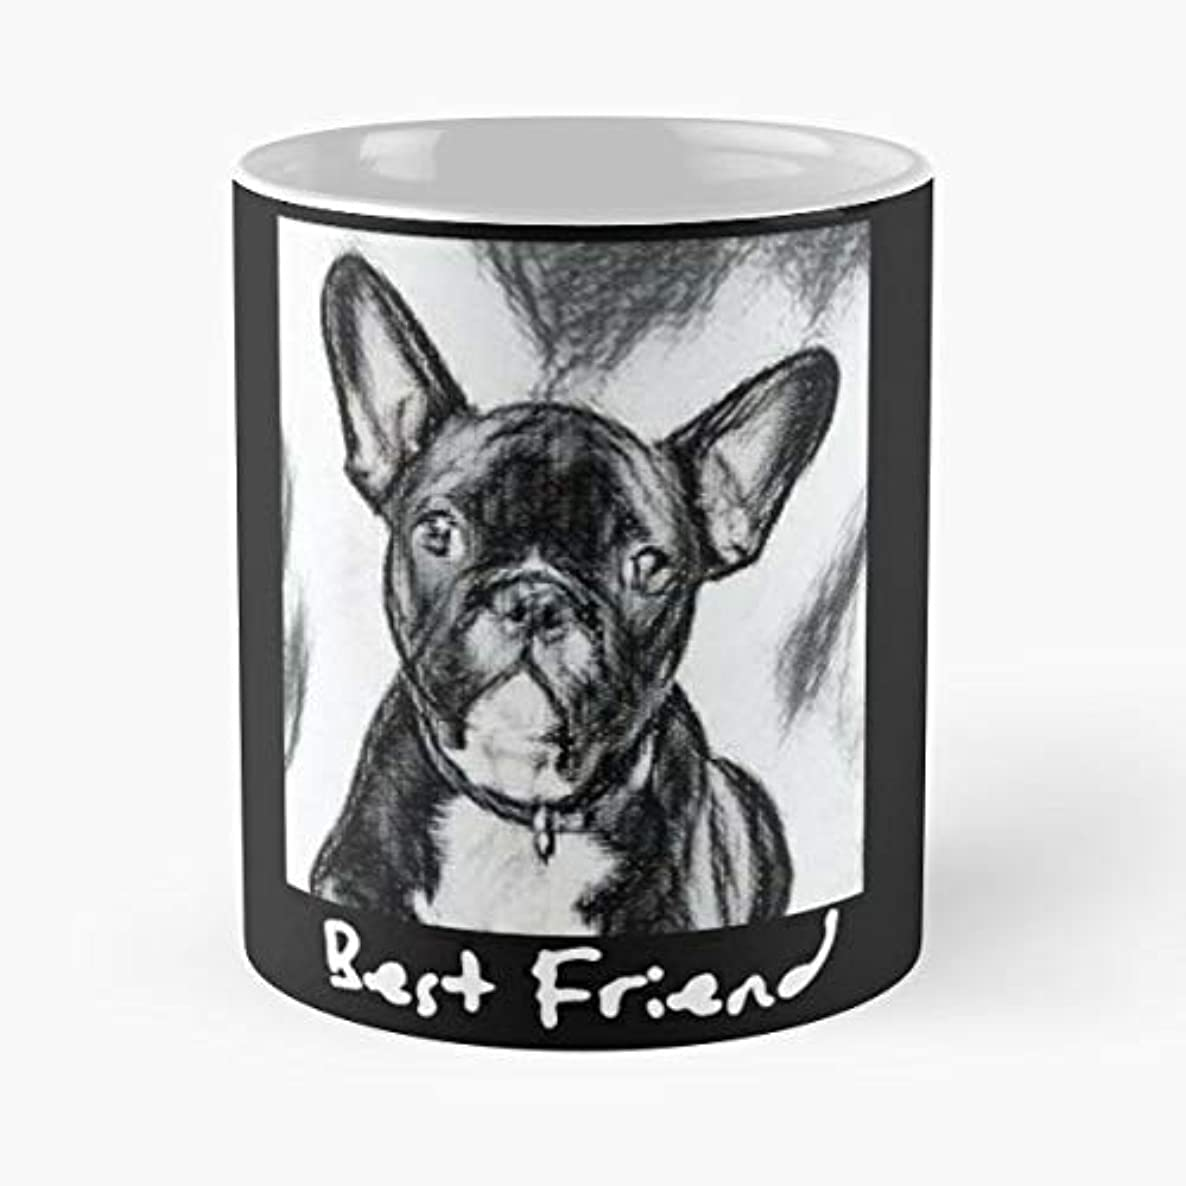 Puppy Best Friend French Bulldog Frenchie - Coffee Mug Tea Cup Gift 11oz Mugs The Gift Holidays.